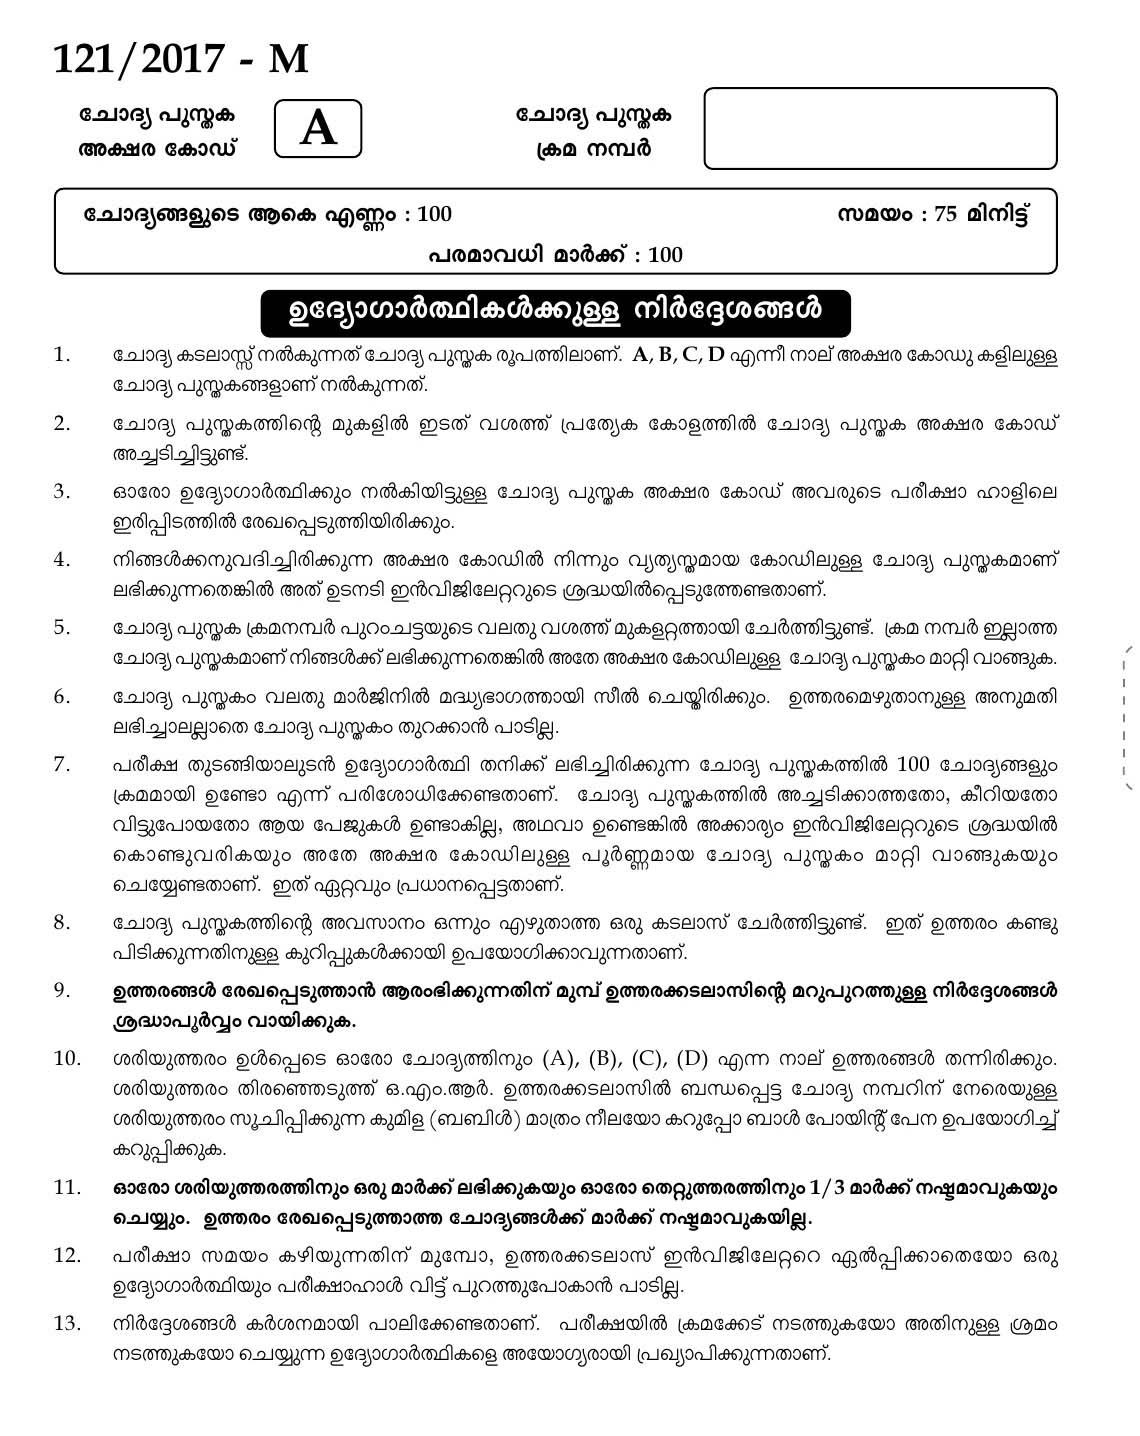 Kerala PSC Pre Primary Teacher Question Code 1212017 M-Teacher